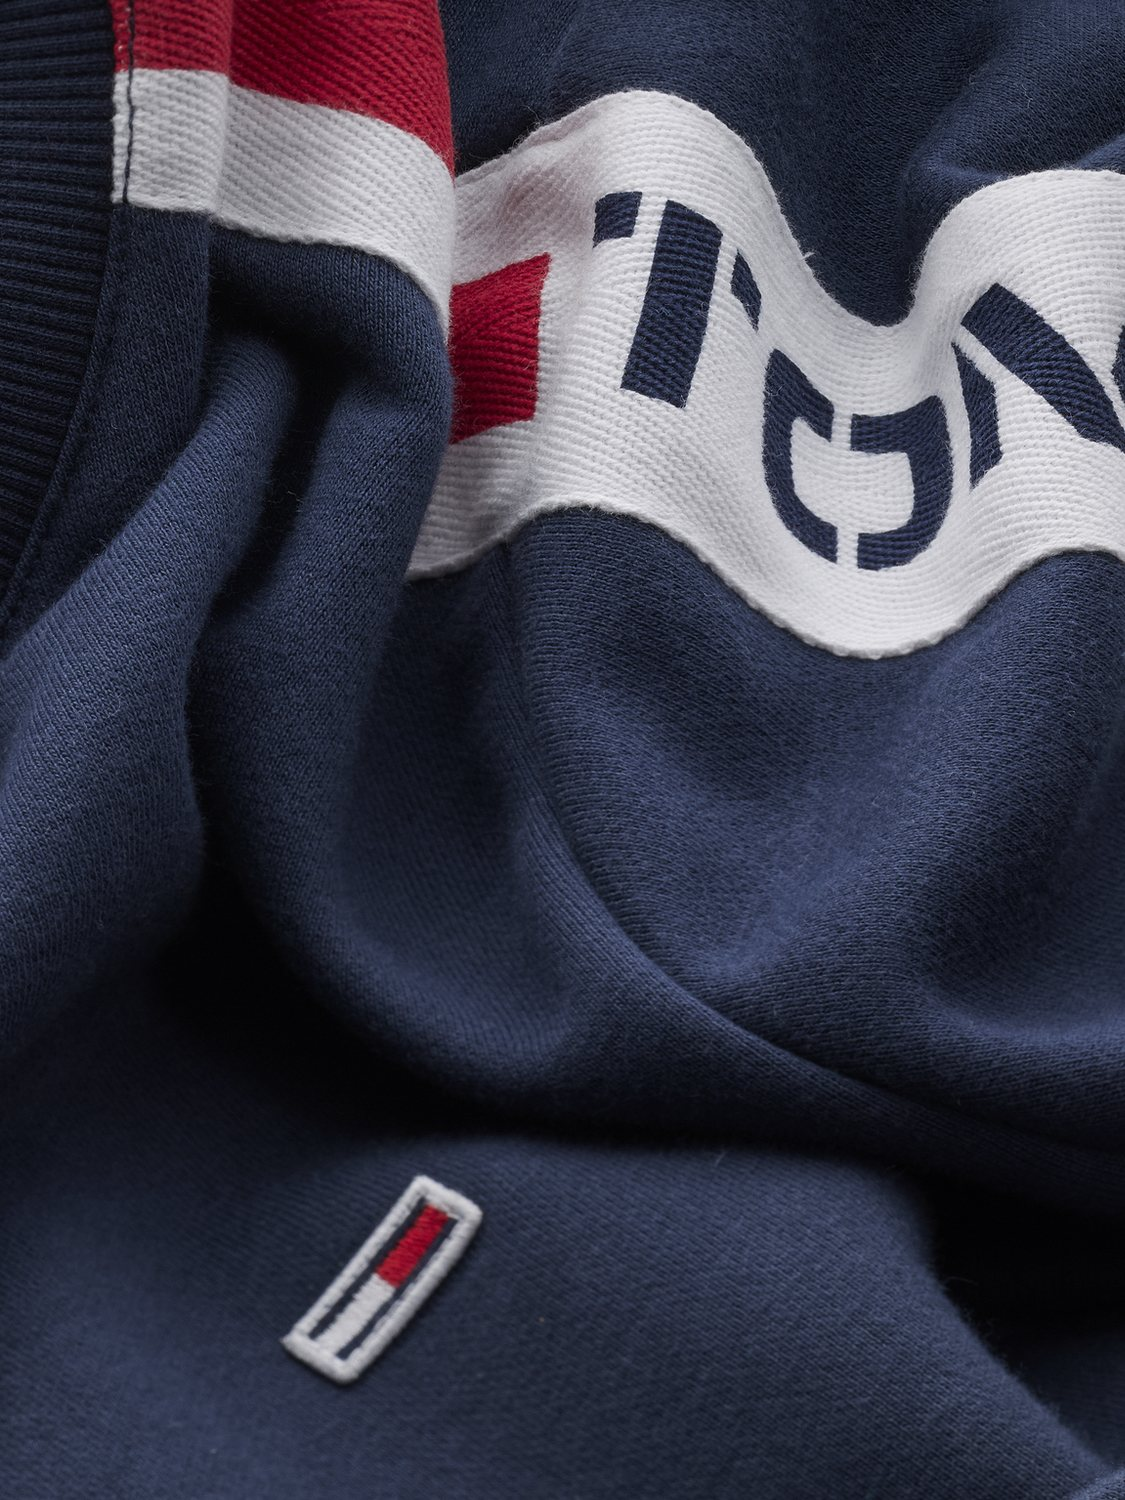 TOMMY HILFIGER - Sweatshirt Tape Crew Navy | GATE 36 Hobro